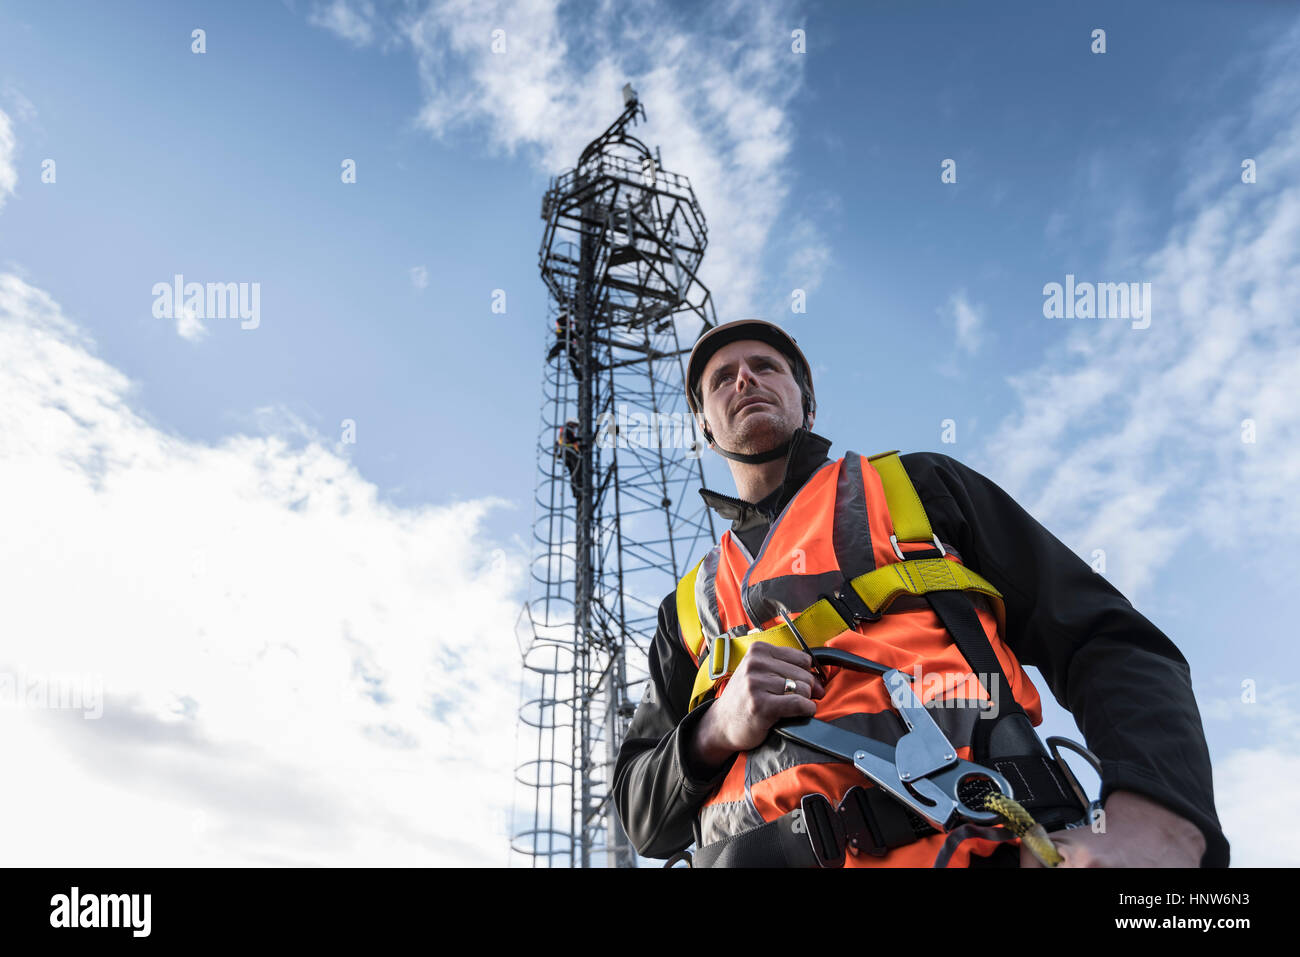 Transmission tower engineer with tower, low angle view - Stock Image